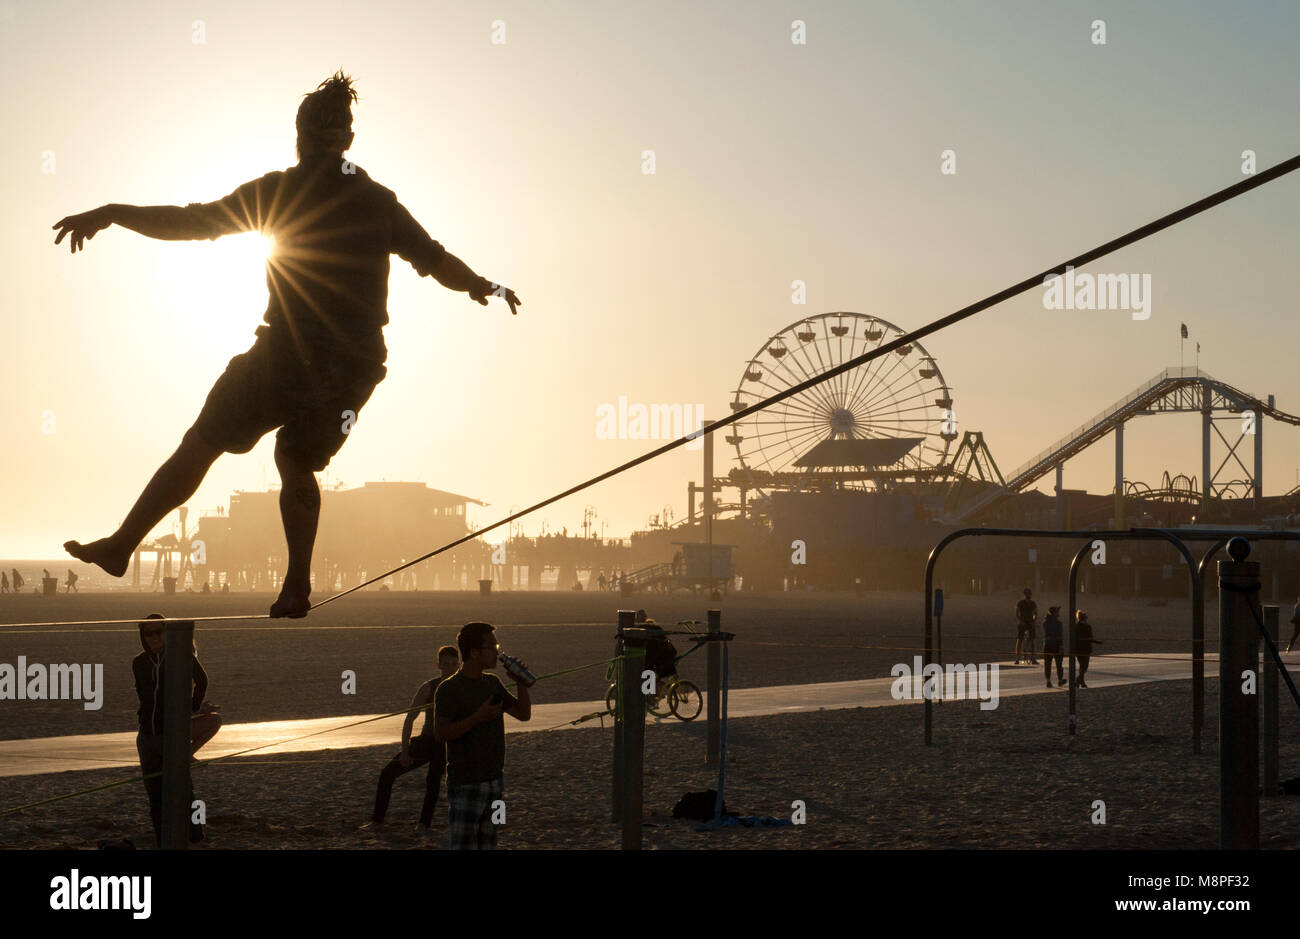 Man practicing on tight rope at beach near the Santa Monica Pier, Los Angeles, CA - Stock Image